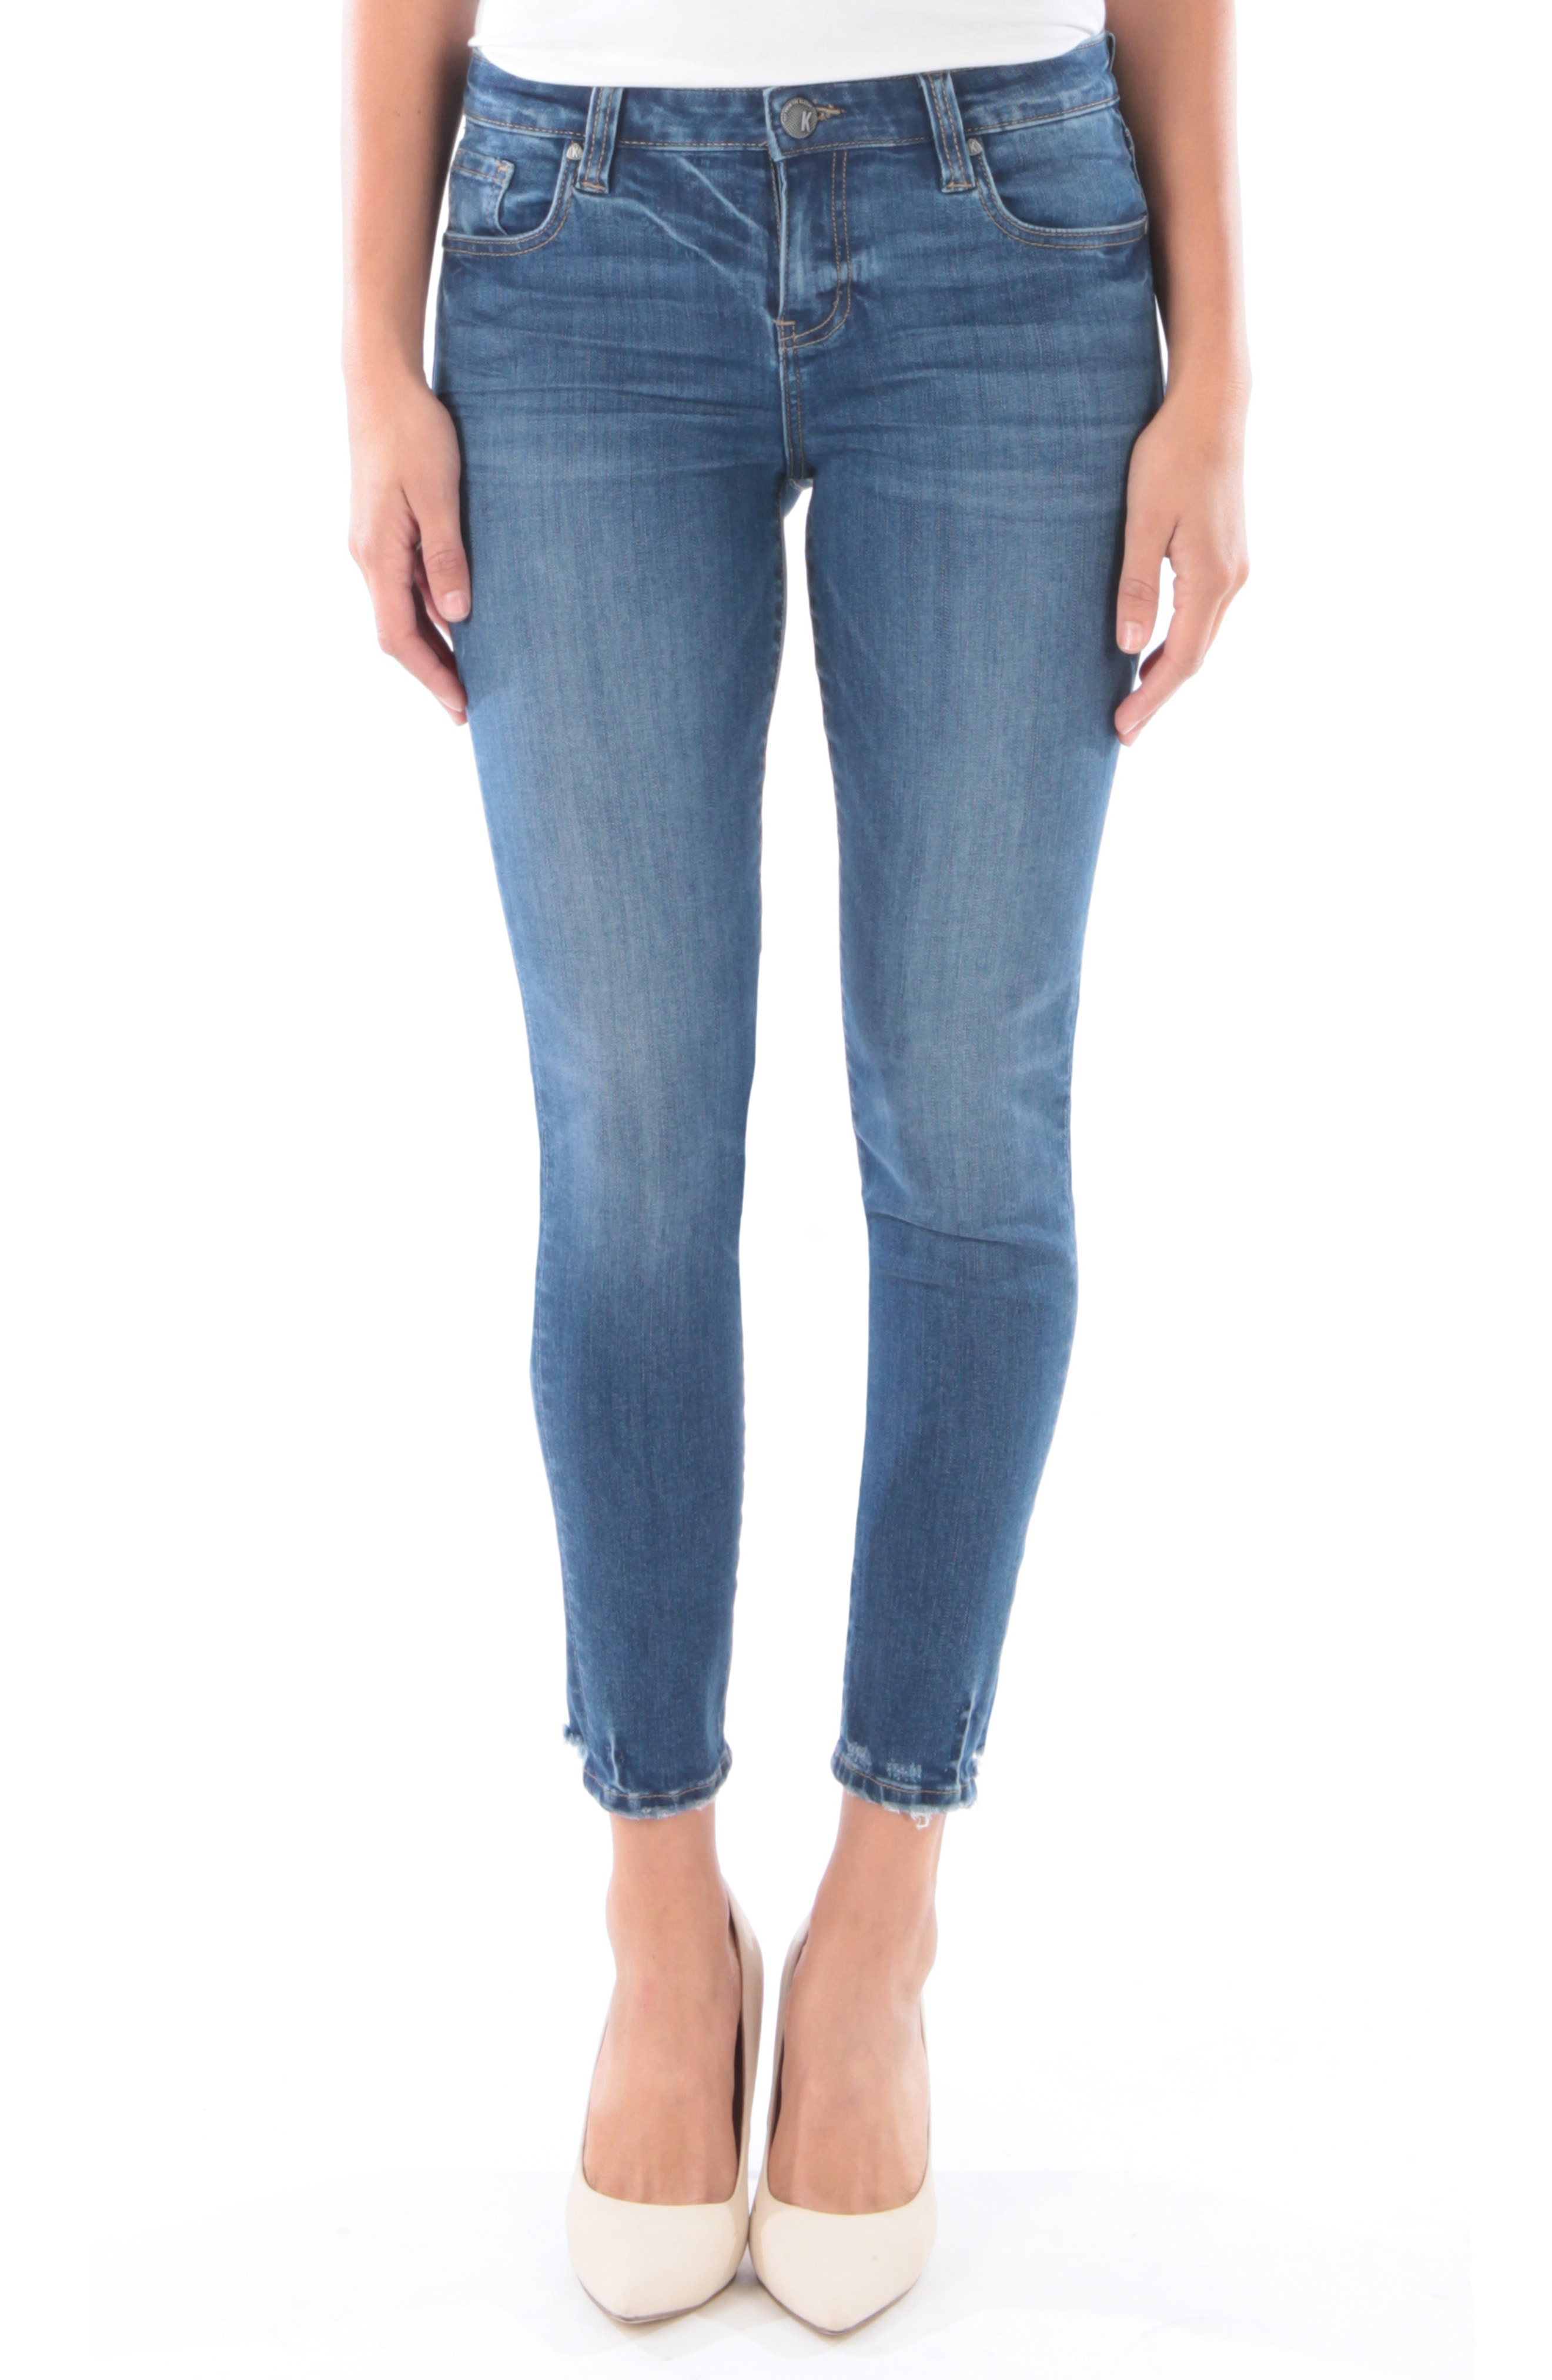 KUT from the Kloth Donna Ankle Skinny Jeans (Finding)